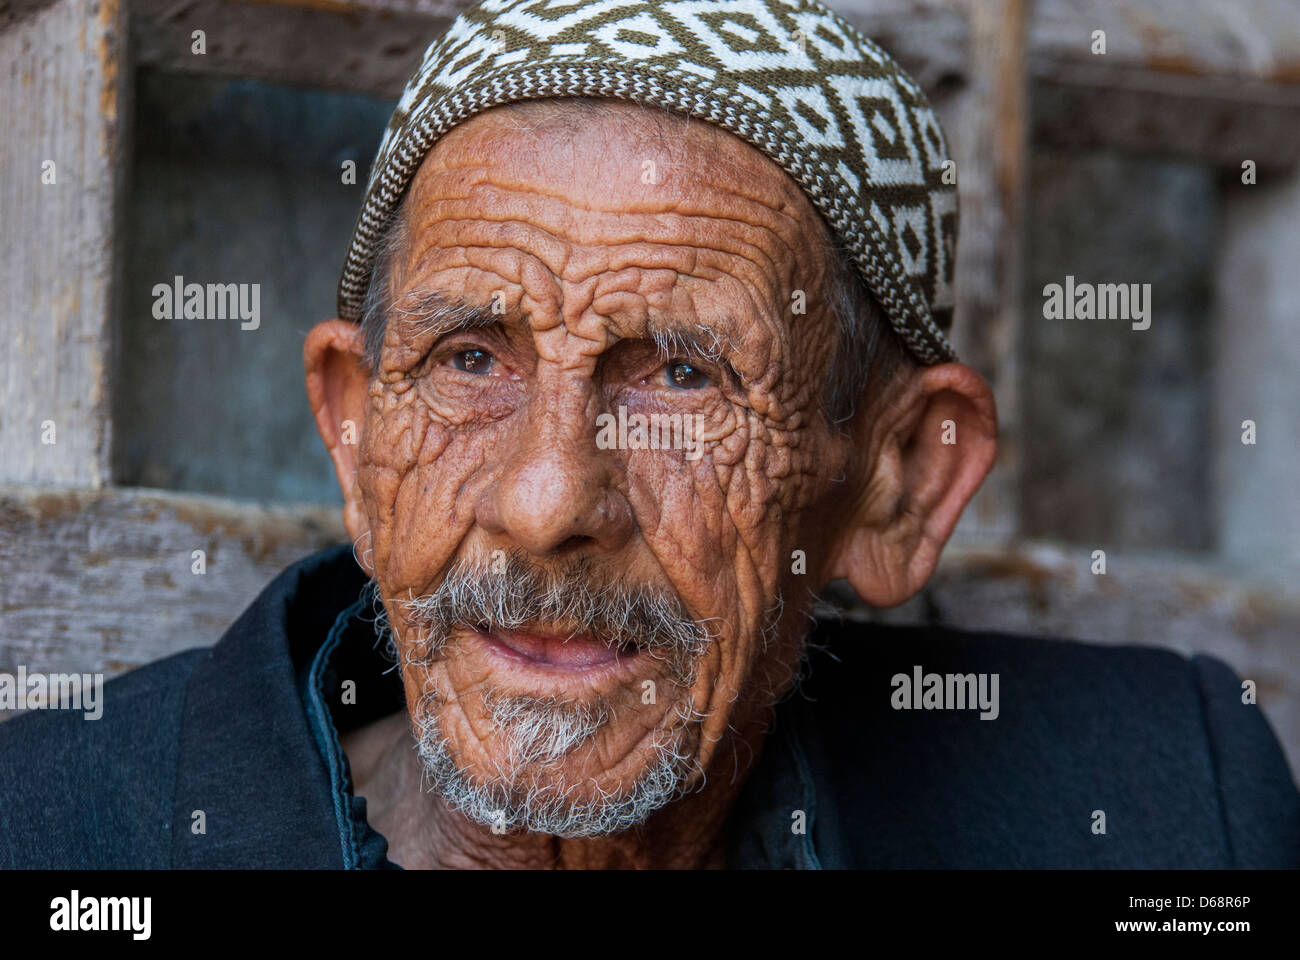 Headshot of a mature Arab man. Photographed in the Old City Jerusalem - Stock Image